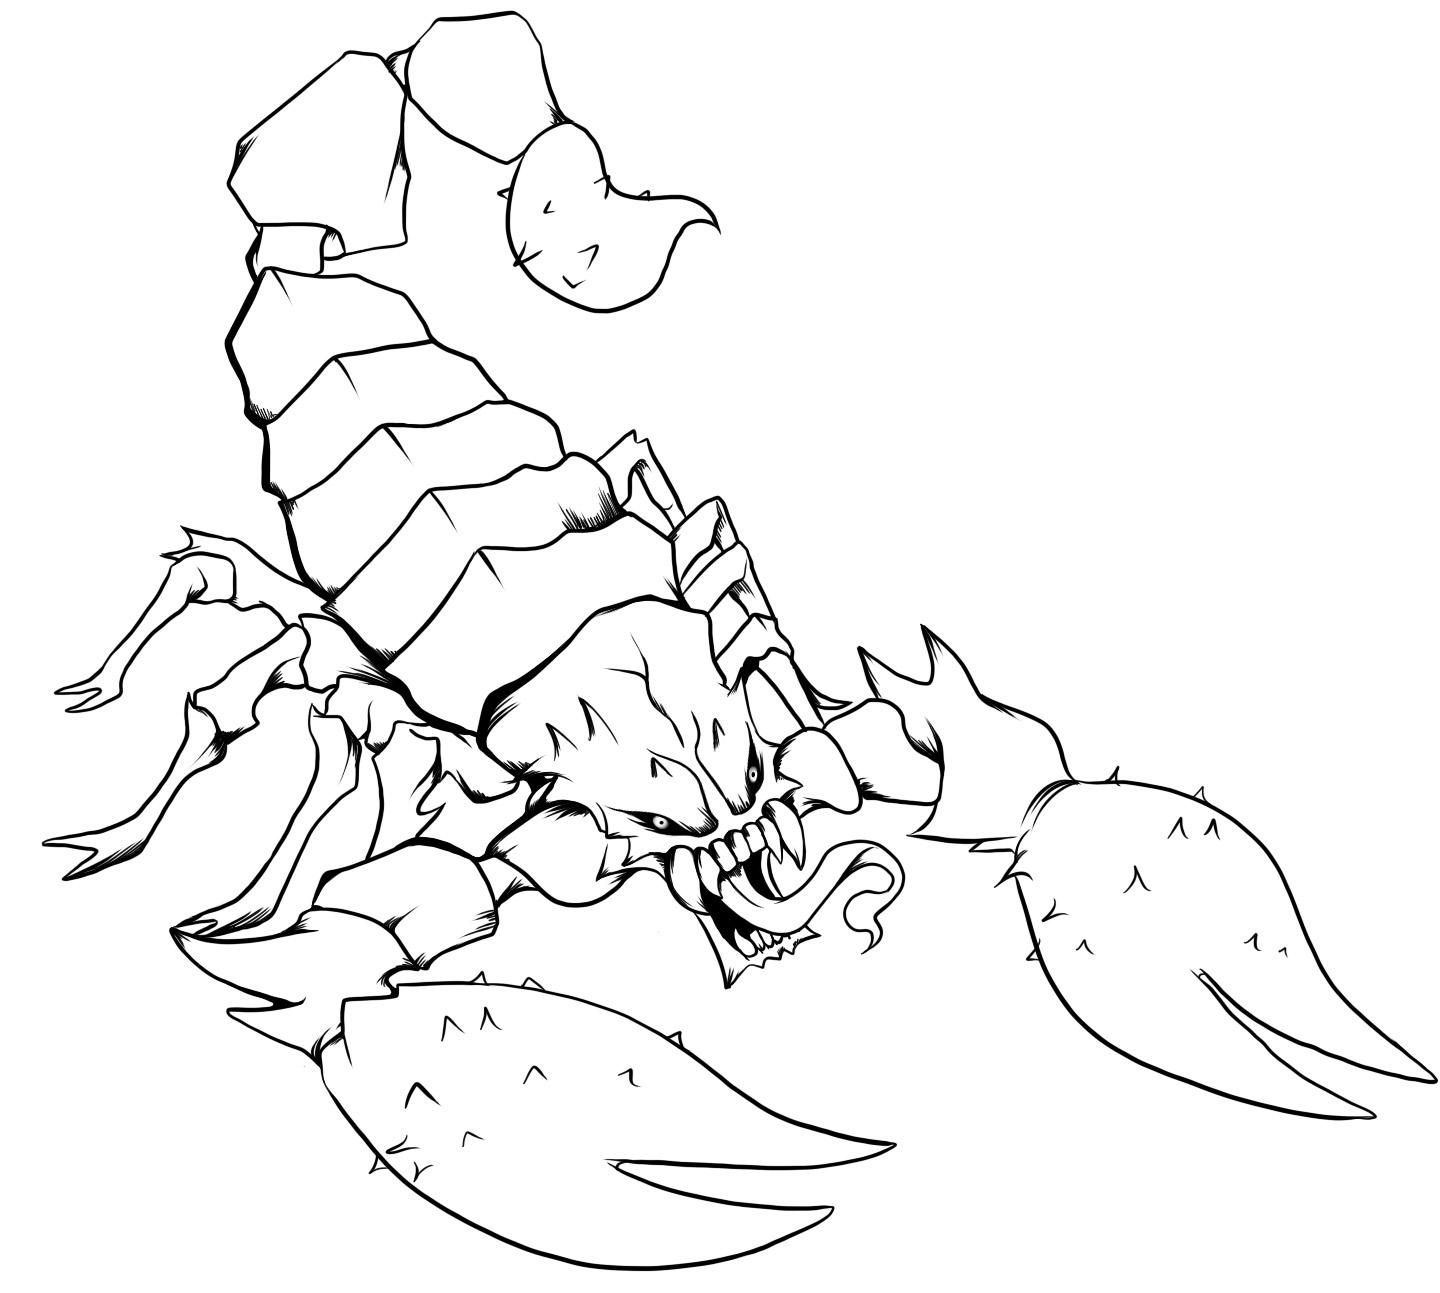 scorpion coloring free printable scorpion coloring pages for kids scorpion coloring